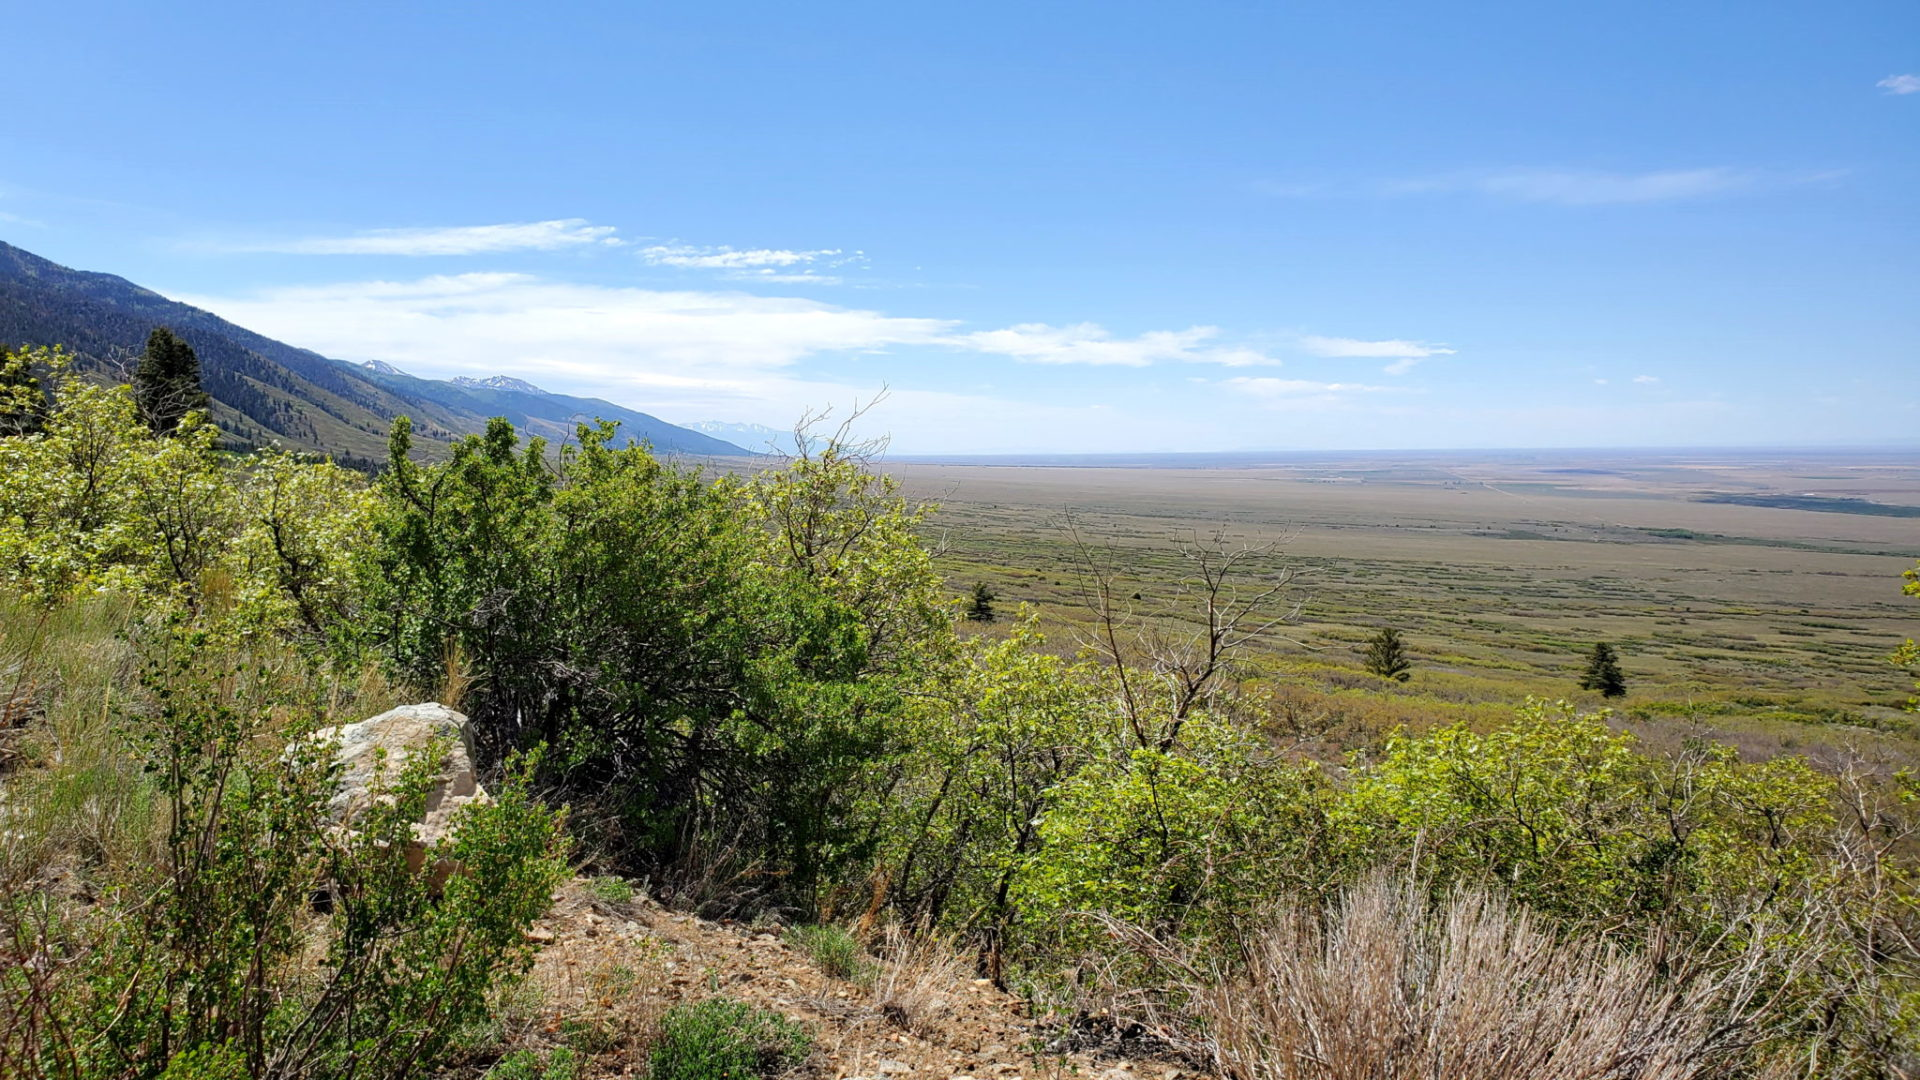 View of the San Luis Valley